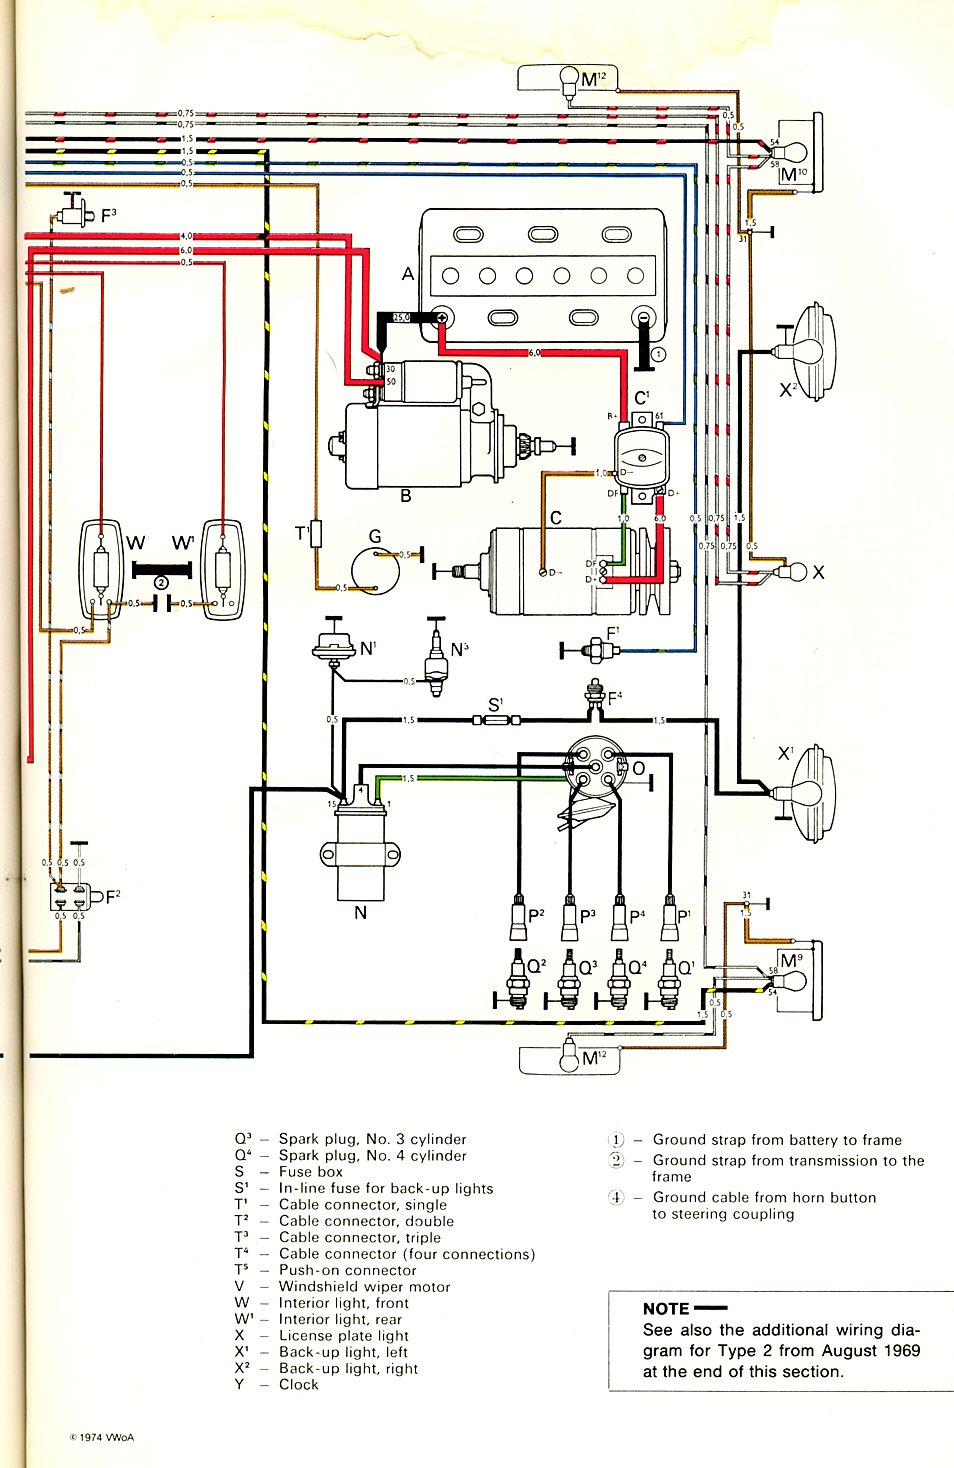 baybus_70b thesamba com type 2 wiring diagrams vw engine wiring diagram at crackthecode.co